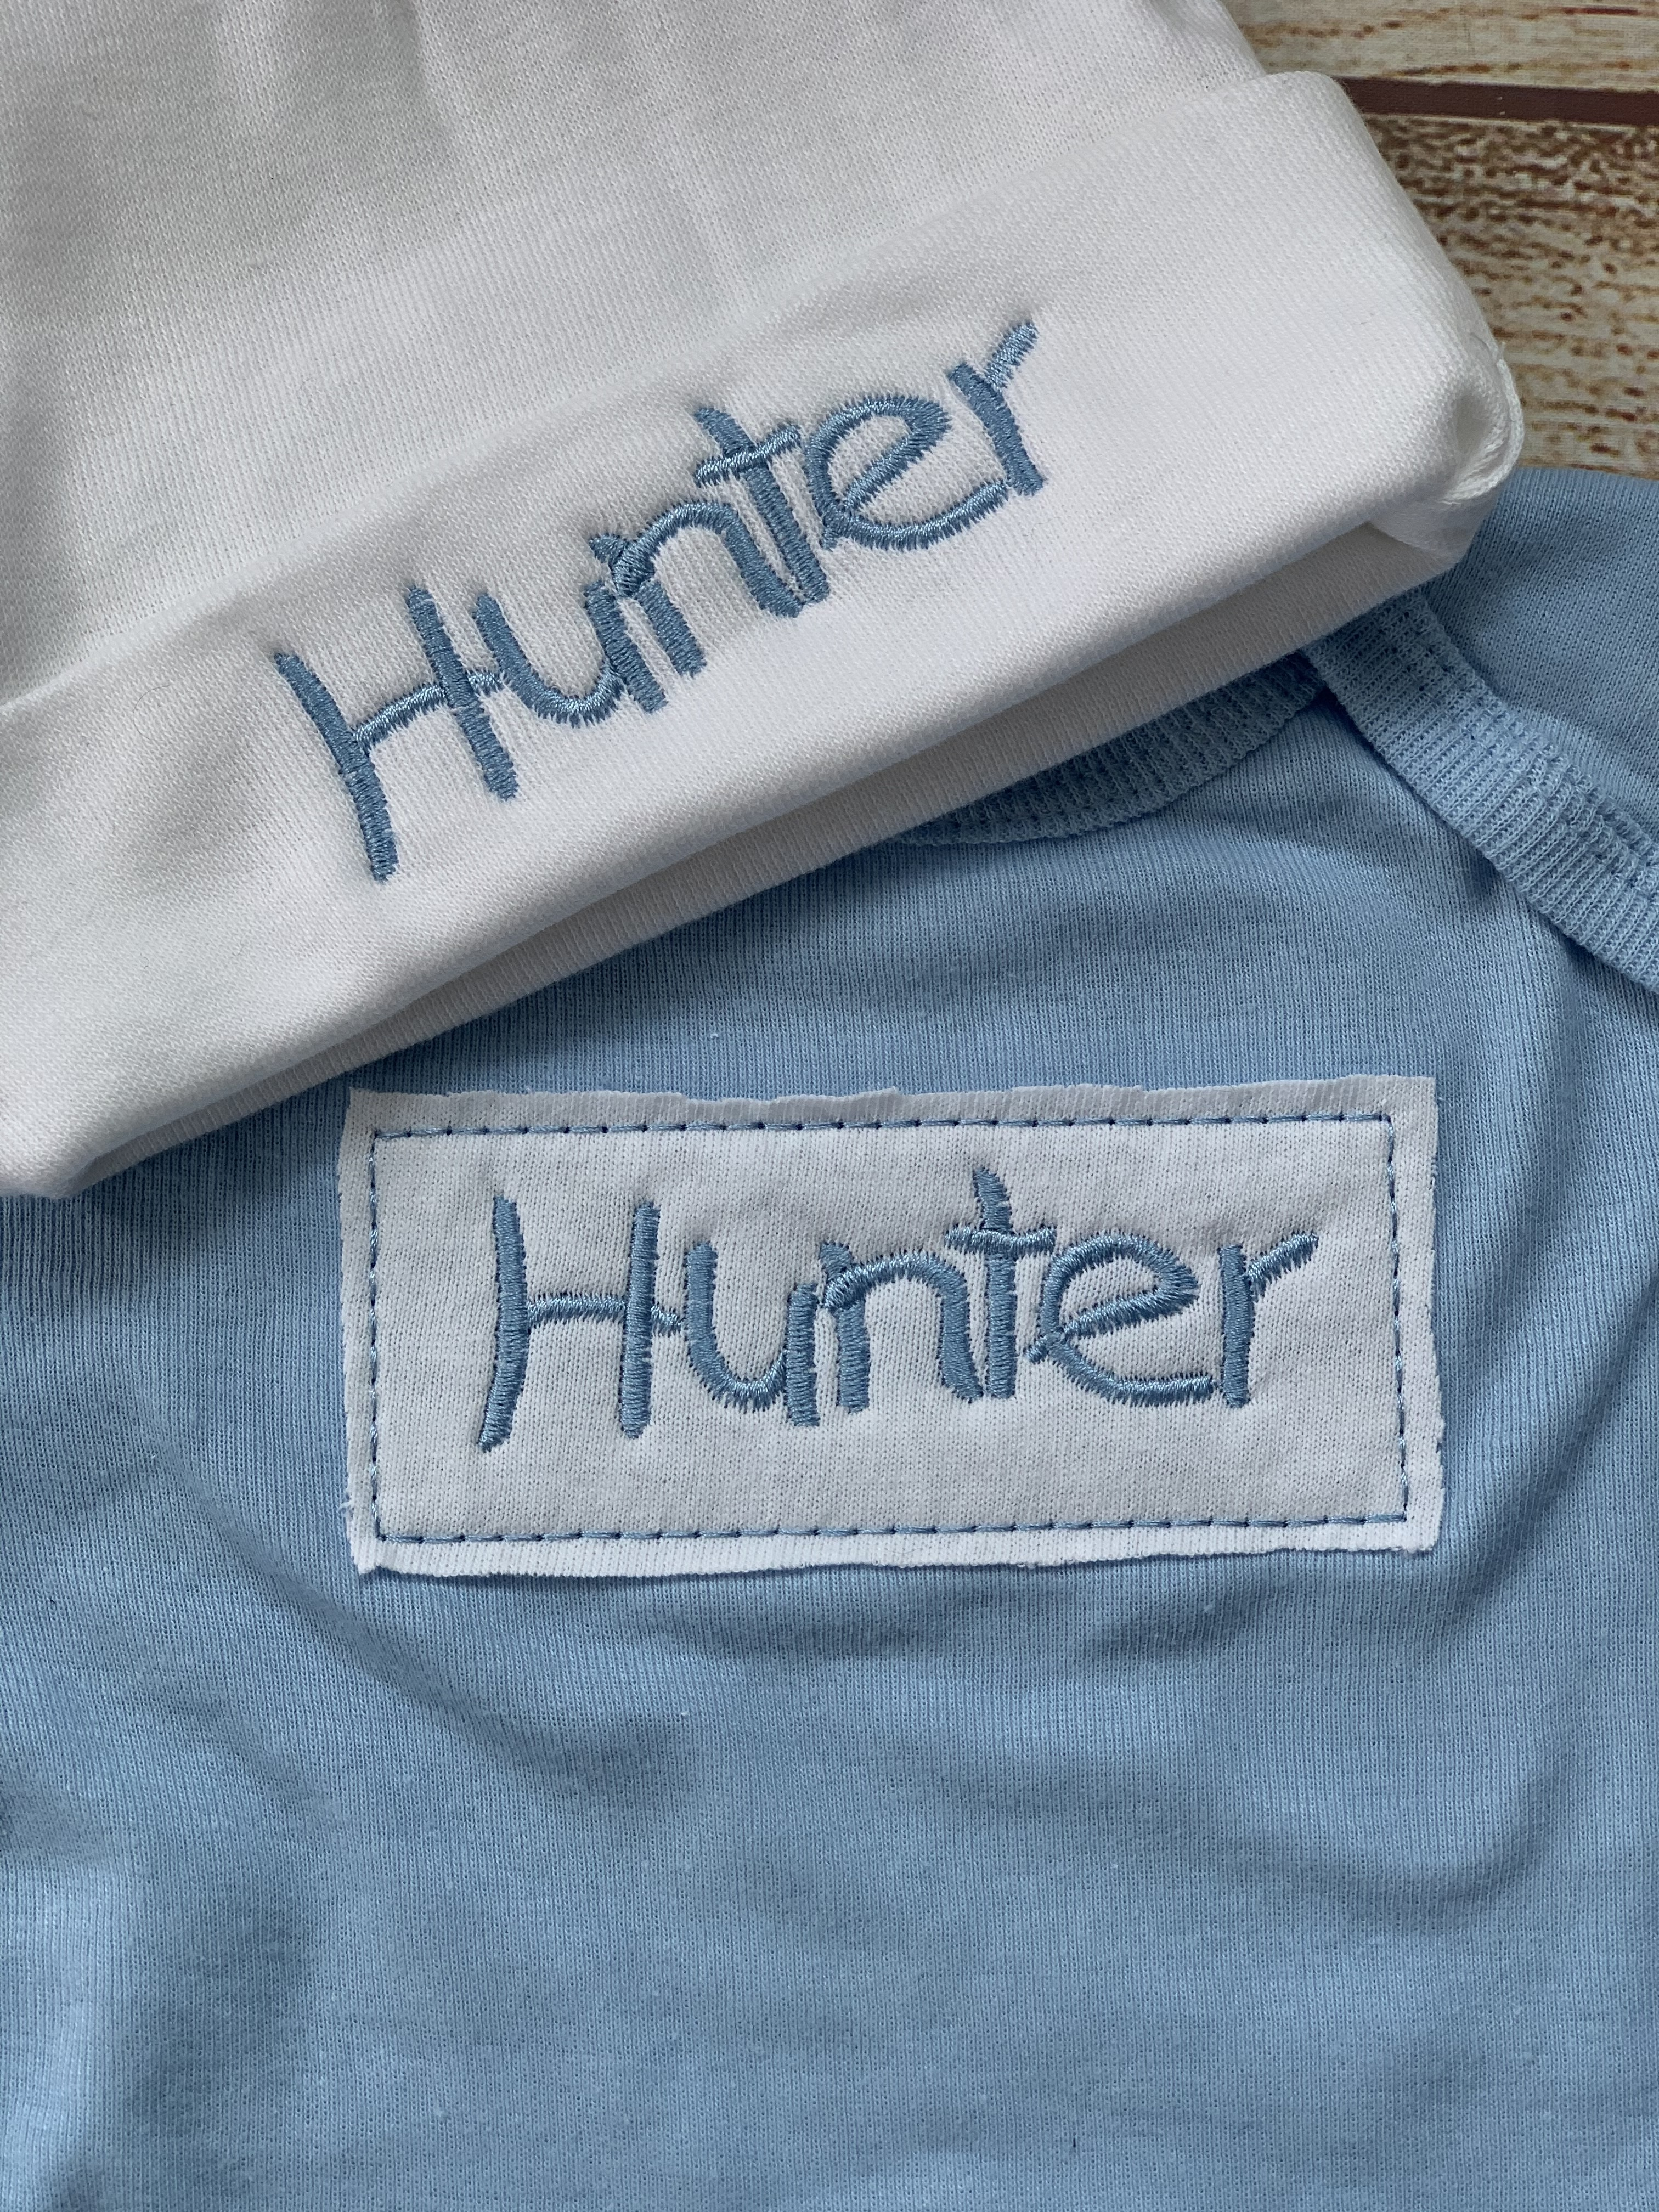 Look at that gorgeous embroidery!  Personalization is so fun for the new baby.